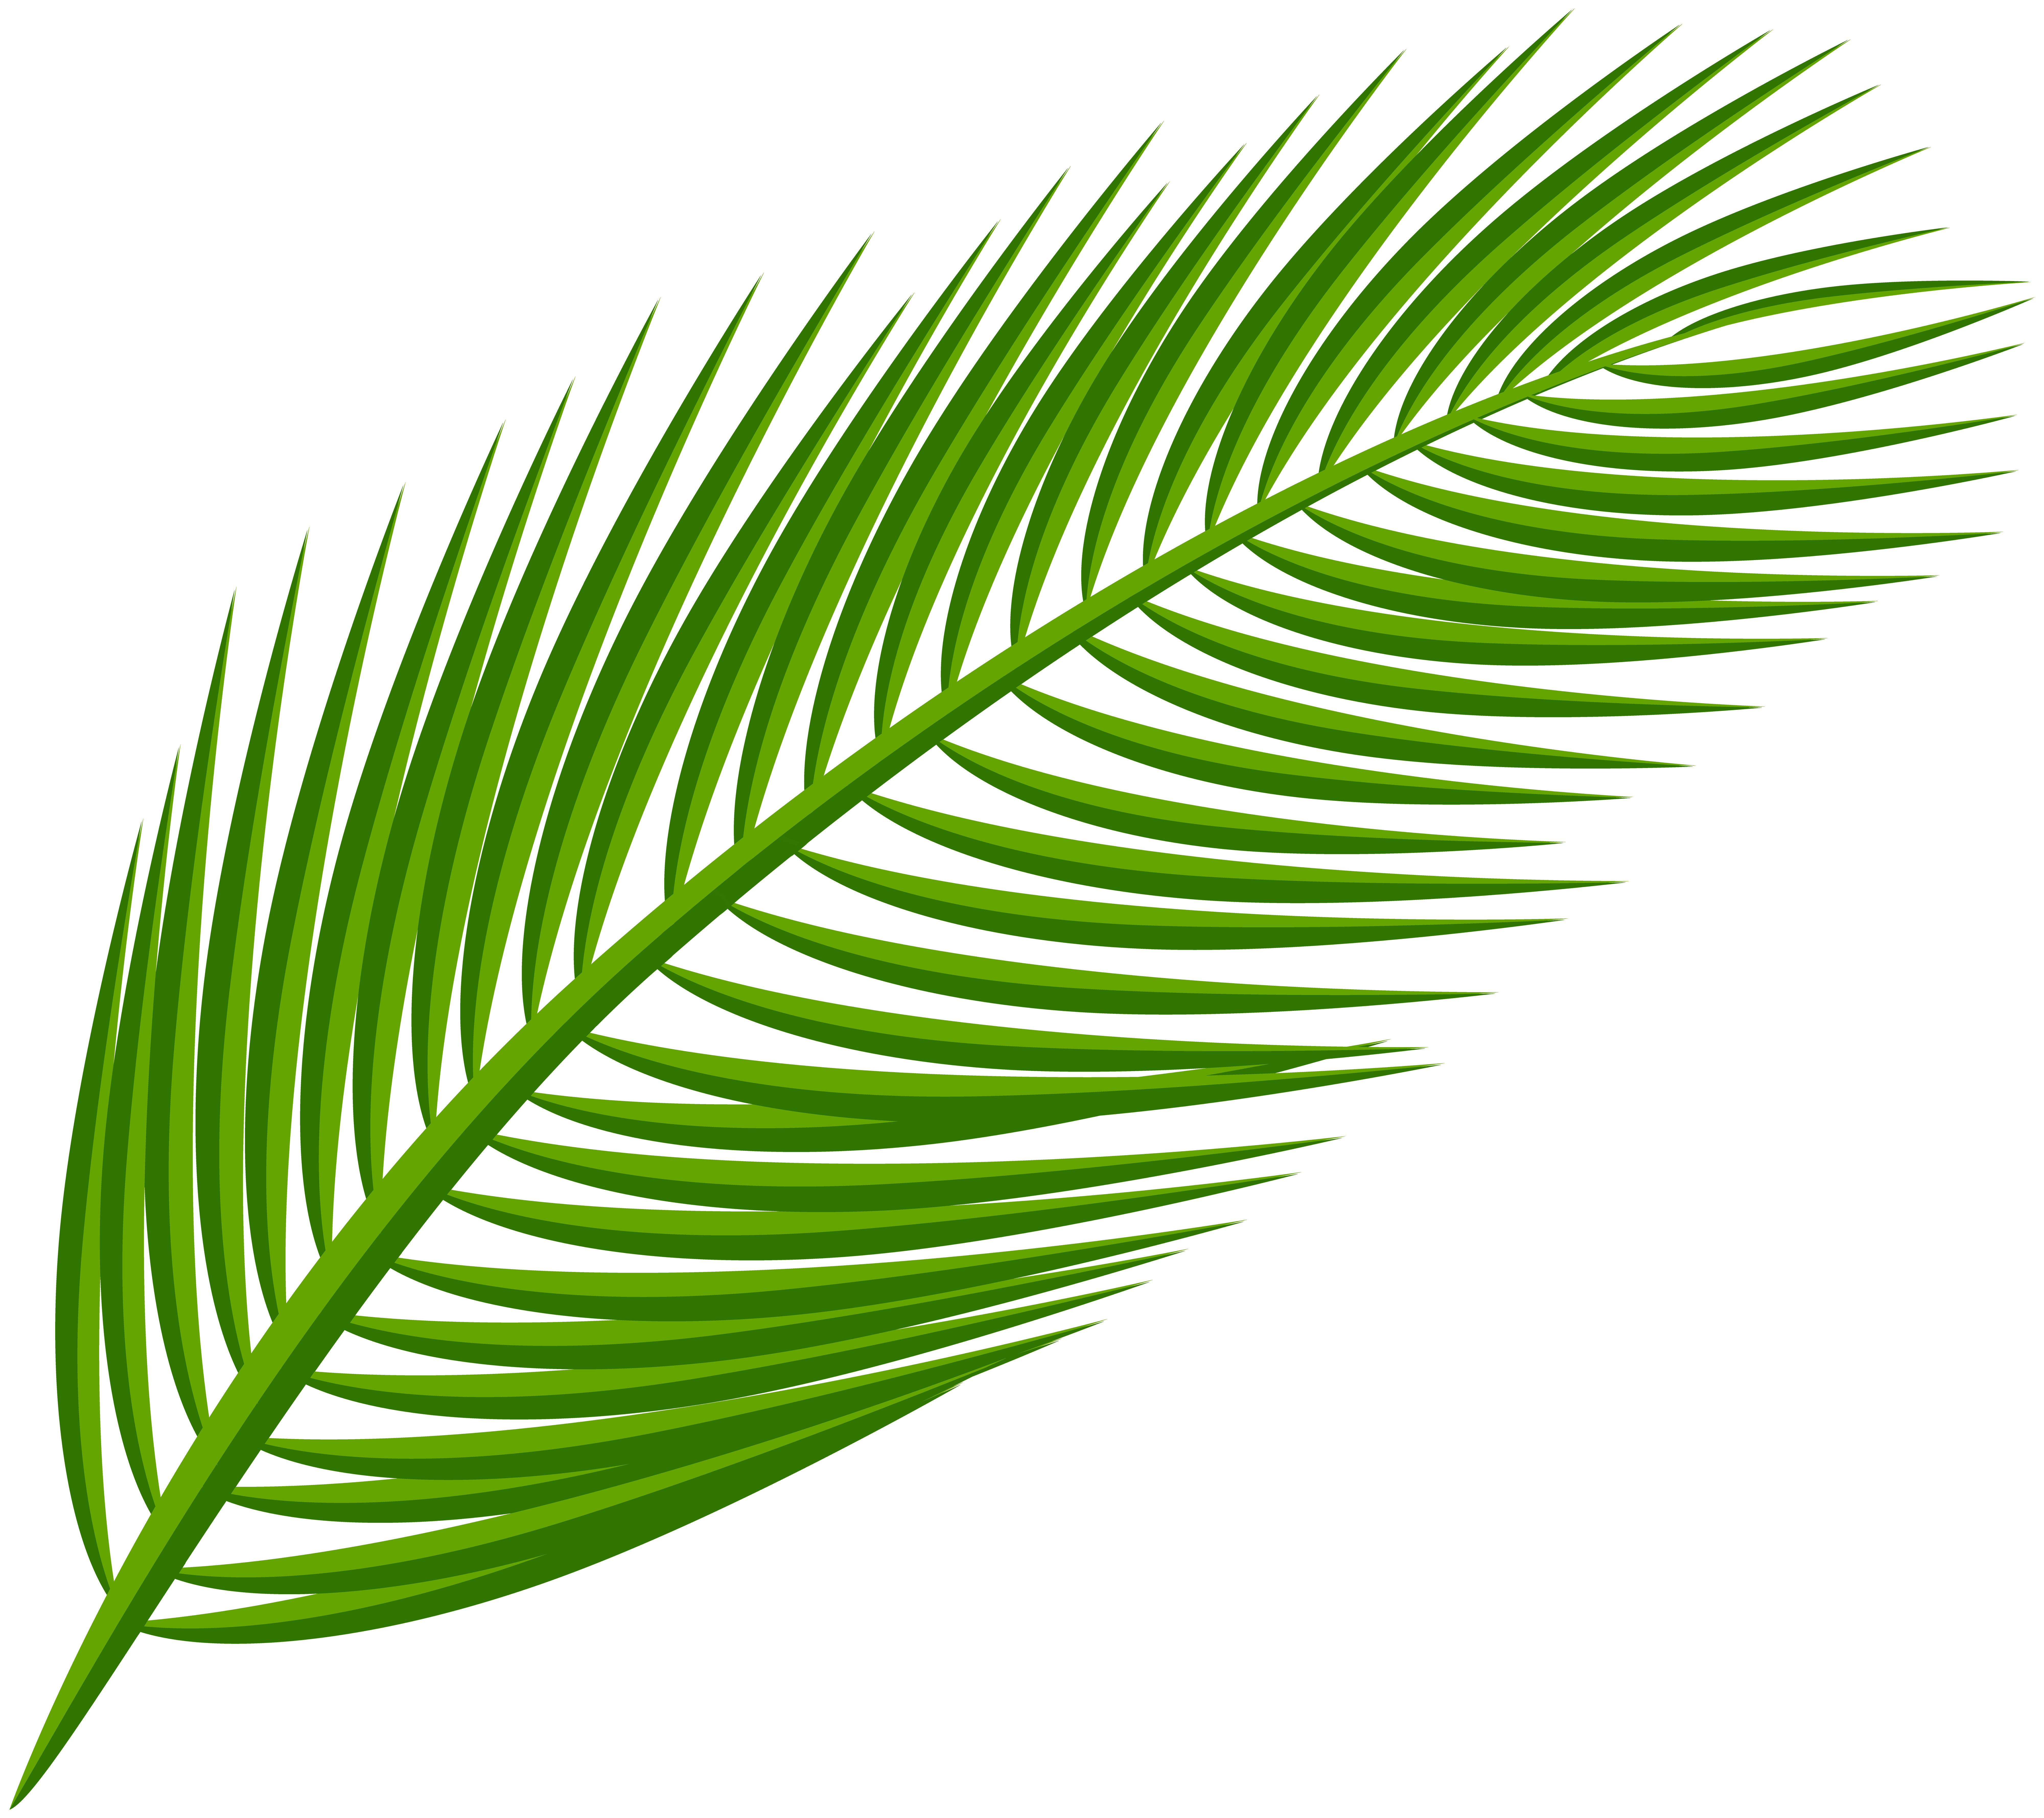 Leaves Clipart Palm Leaves Leaves Palm Leaves Transparent Free For Download On Webstockreview 2021 To get more templates about posters. webstockreview